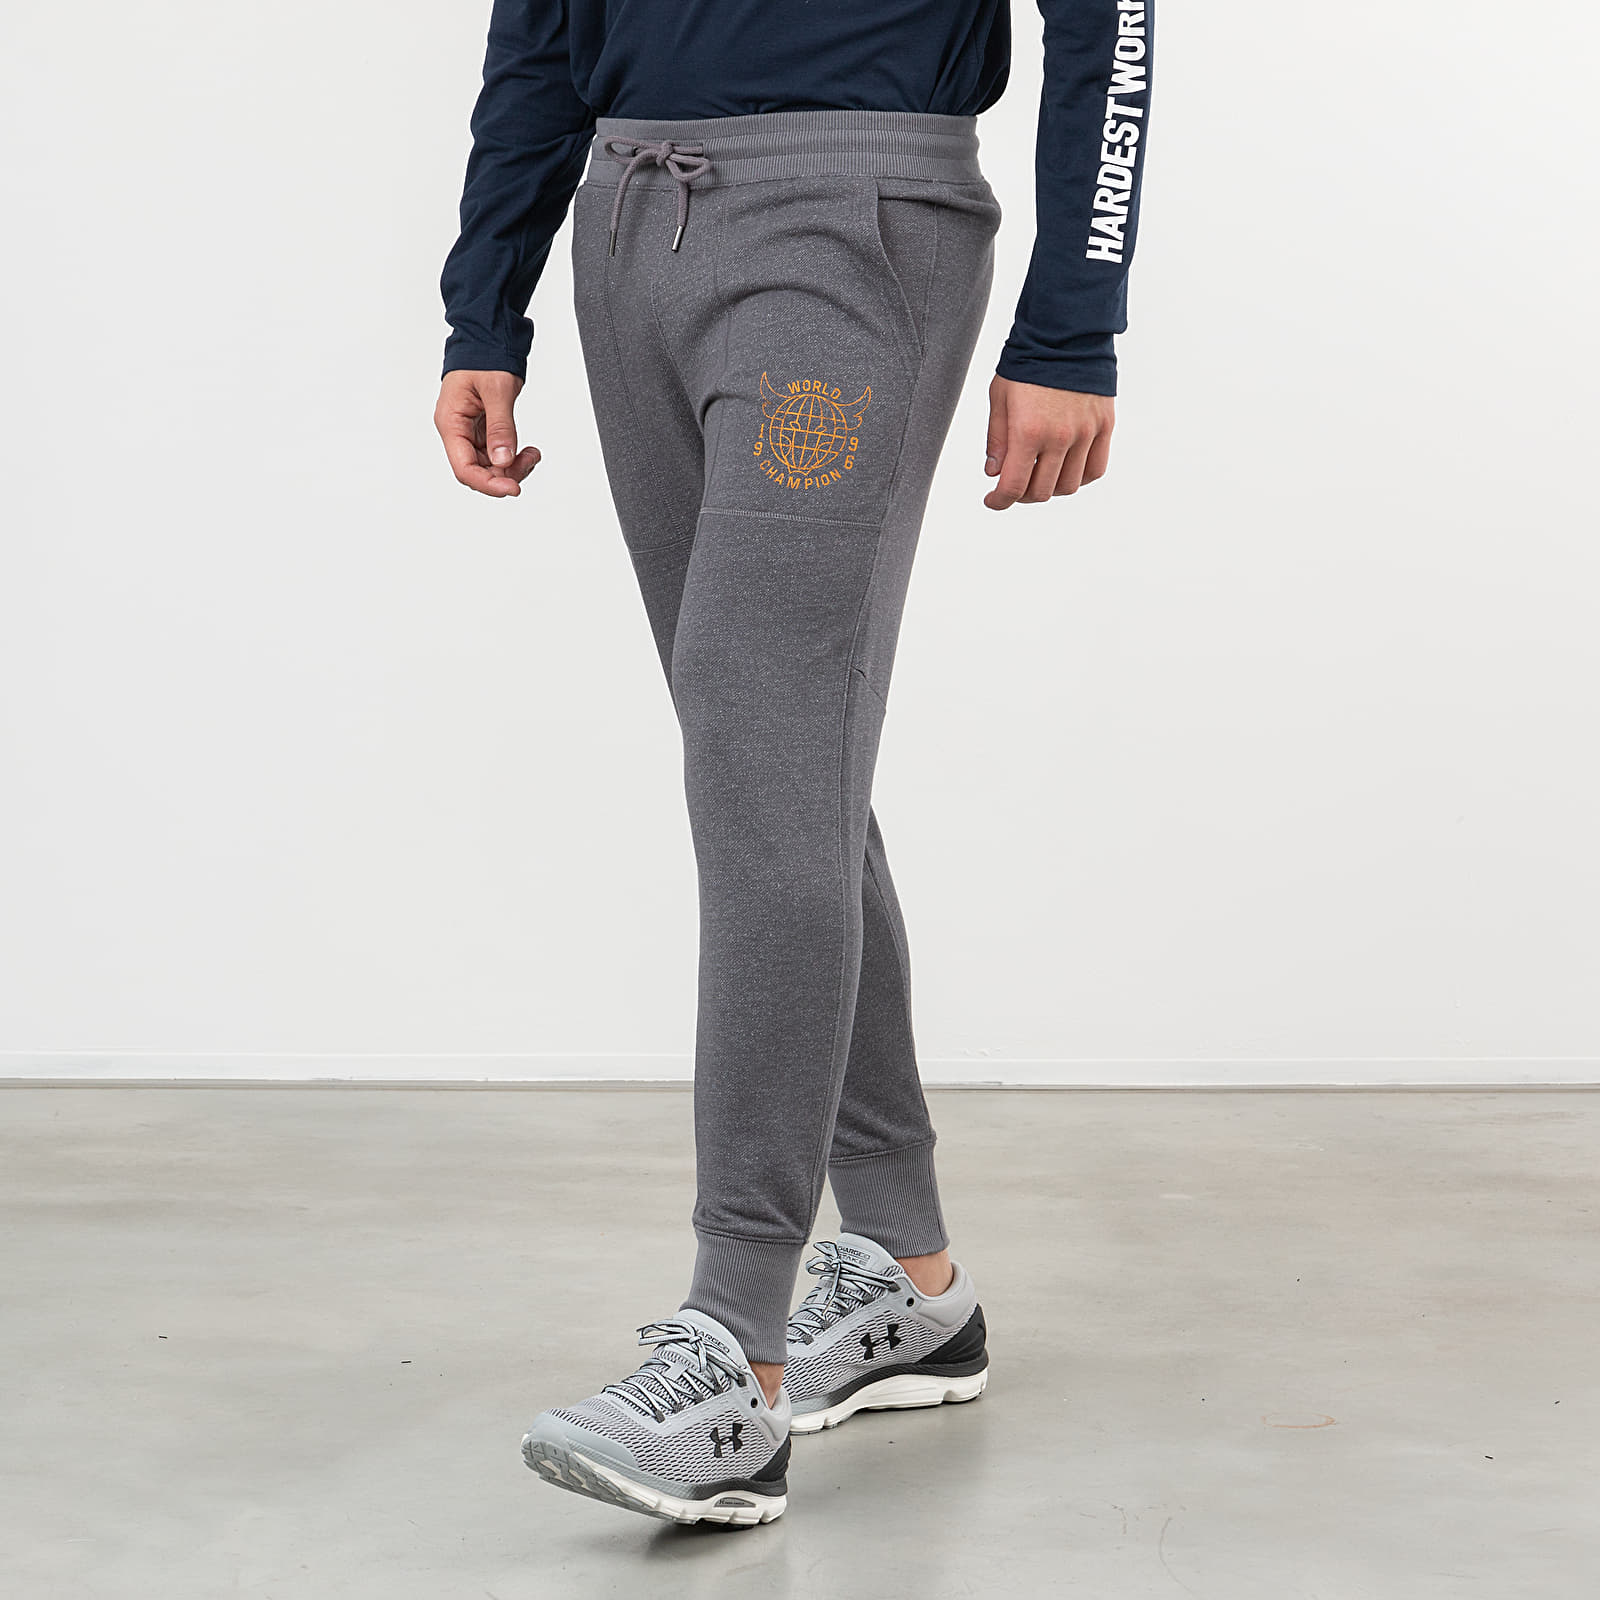 Under Armour Project Rock 96 World Champion Joggers